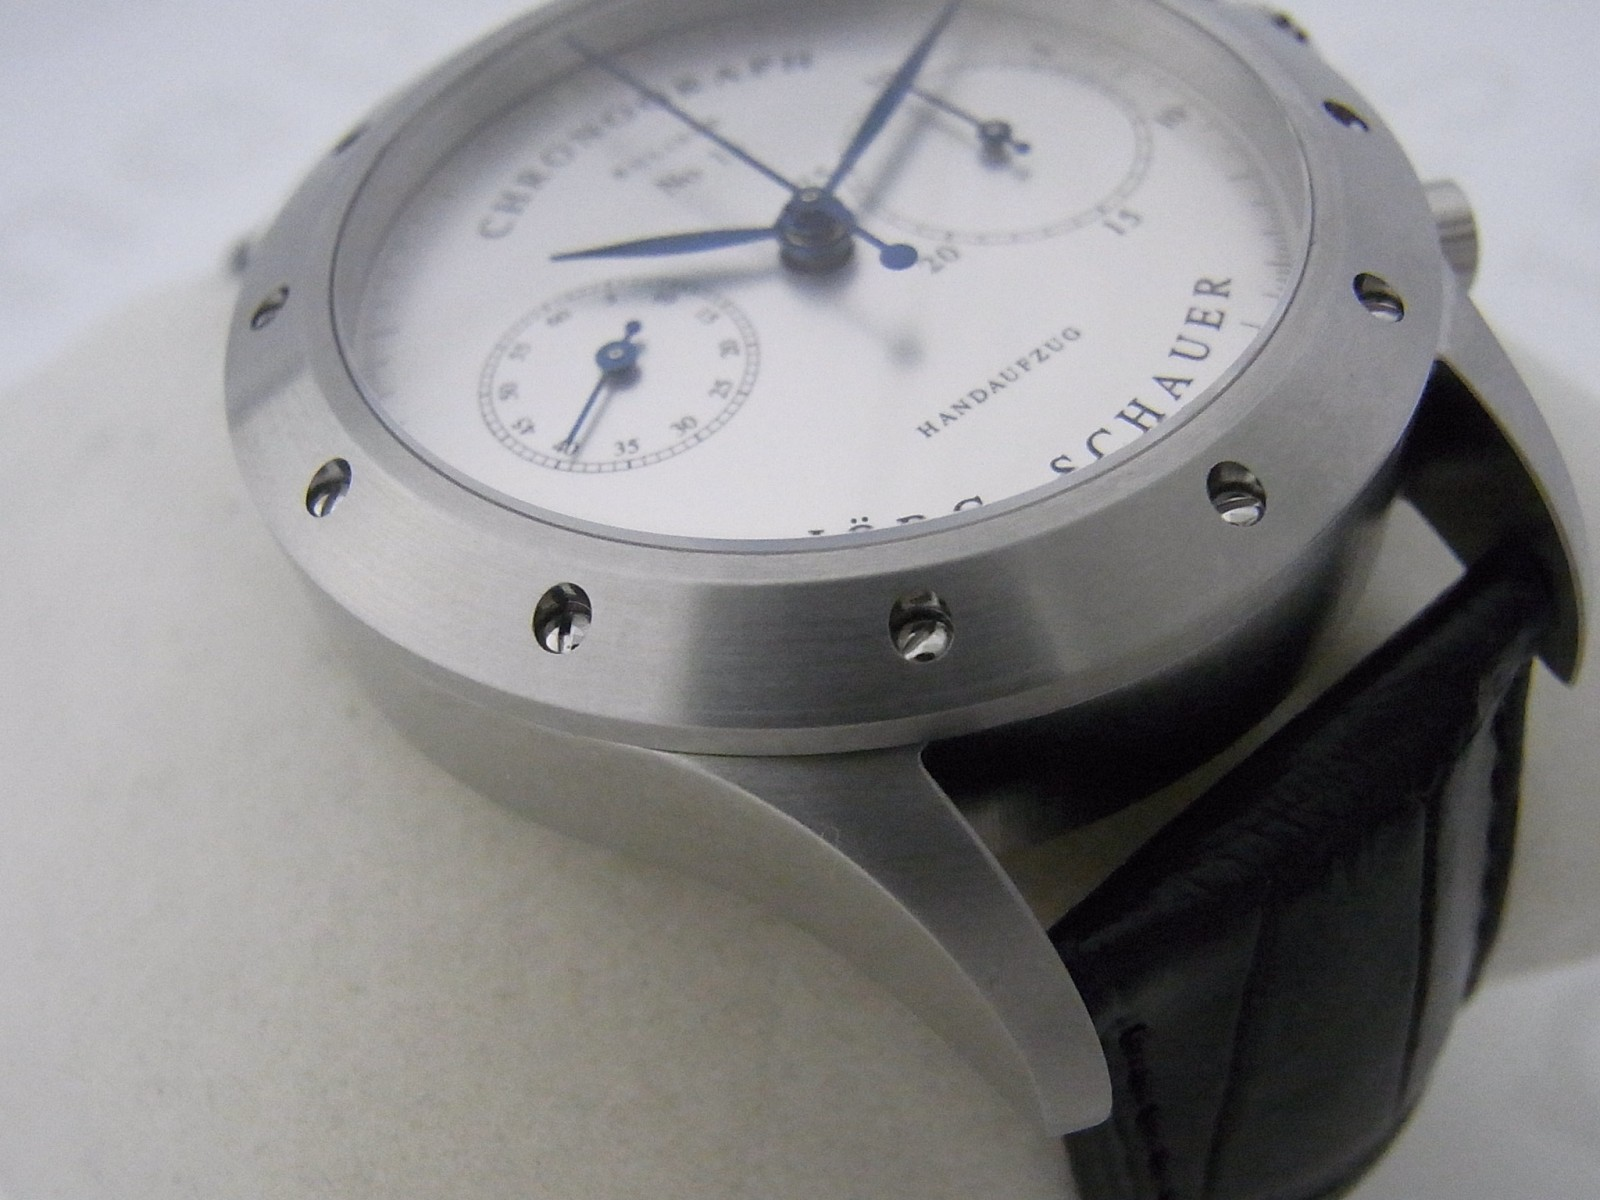 edition gmbh en co awards stowa infos watches schauer bild silver kg normal